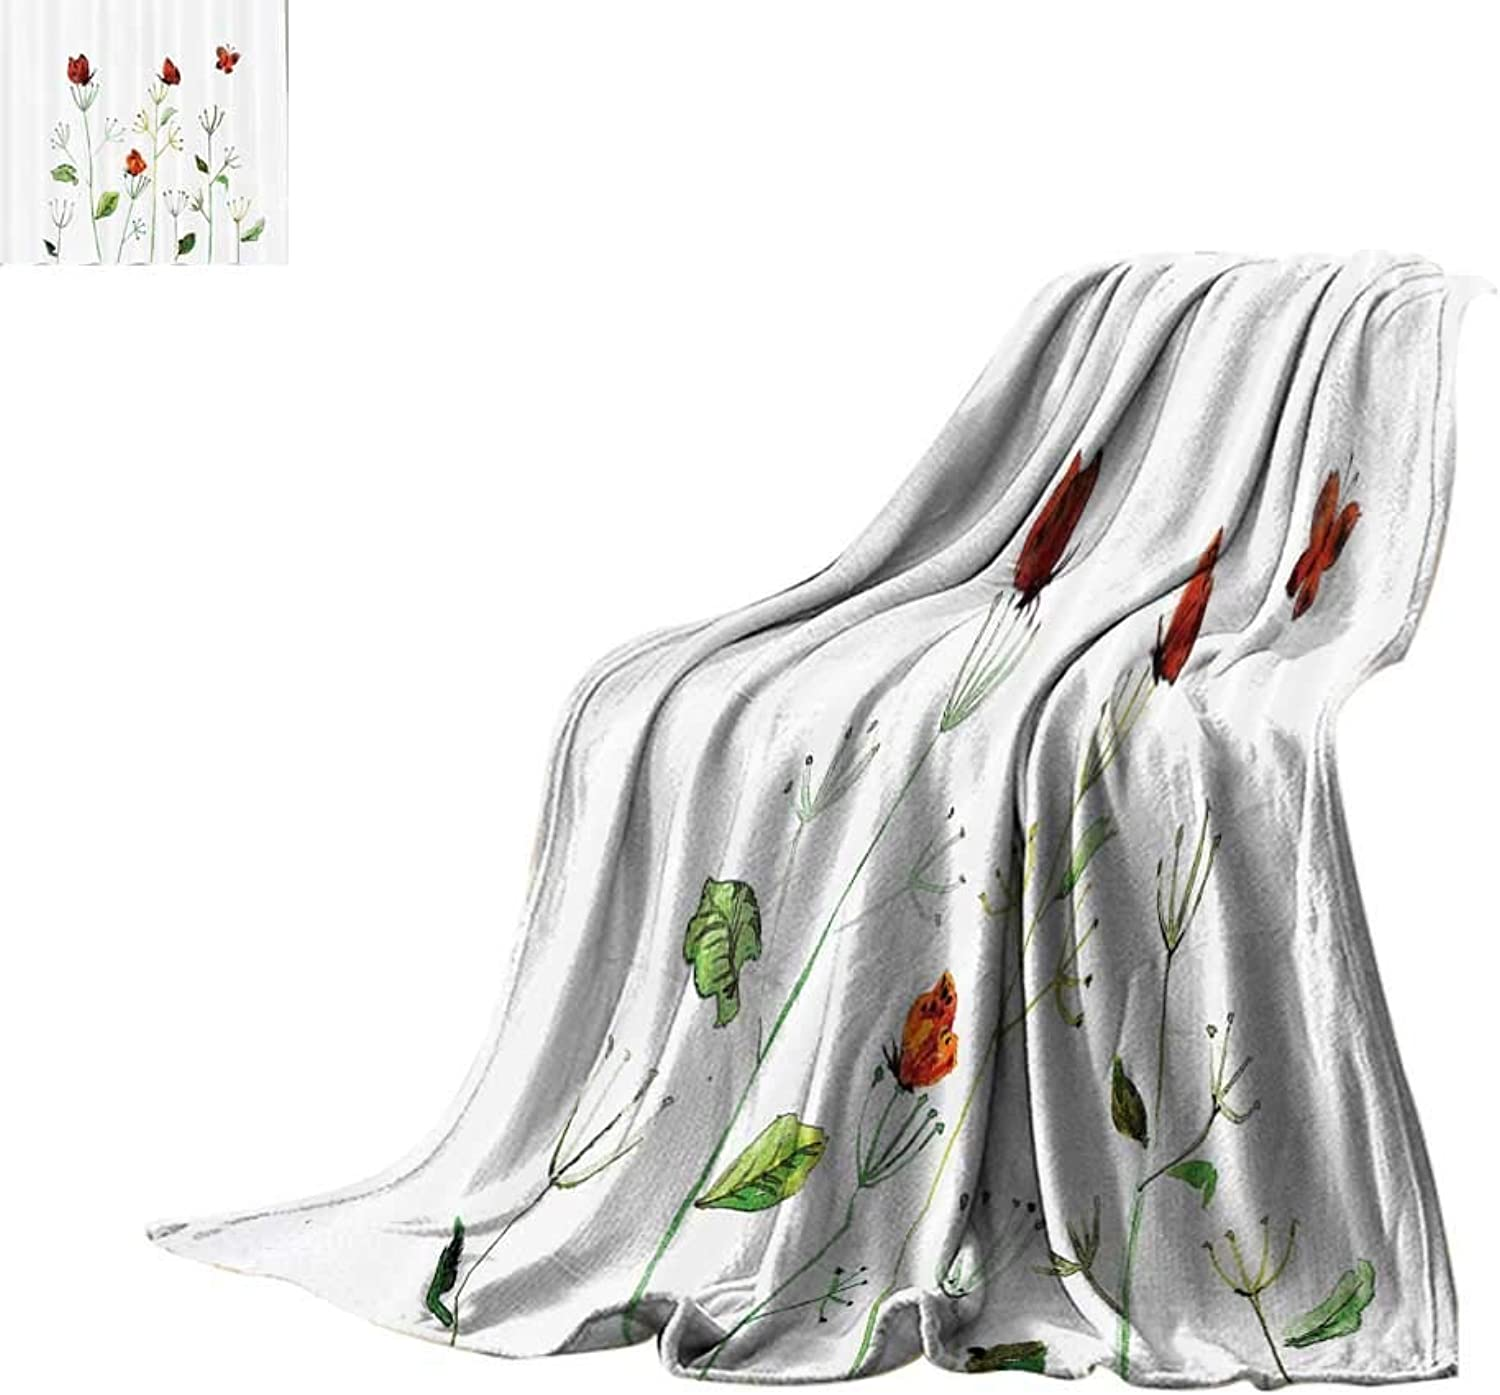 Lightweight Blanket Butterflies Decorations Collection,Wildflower Garden with Butterflies Summertime Joy Happiness Theme Artwork,White Red Green Print Summer Quilt Comforter Bed or Couch 60 x35